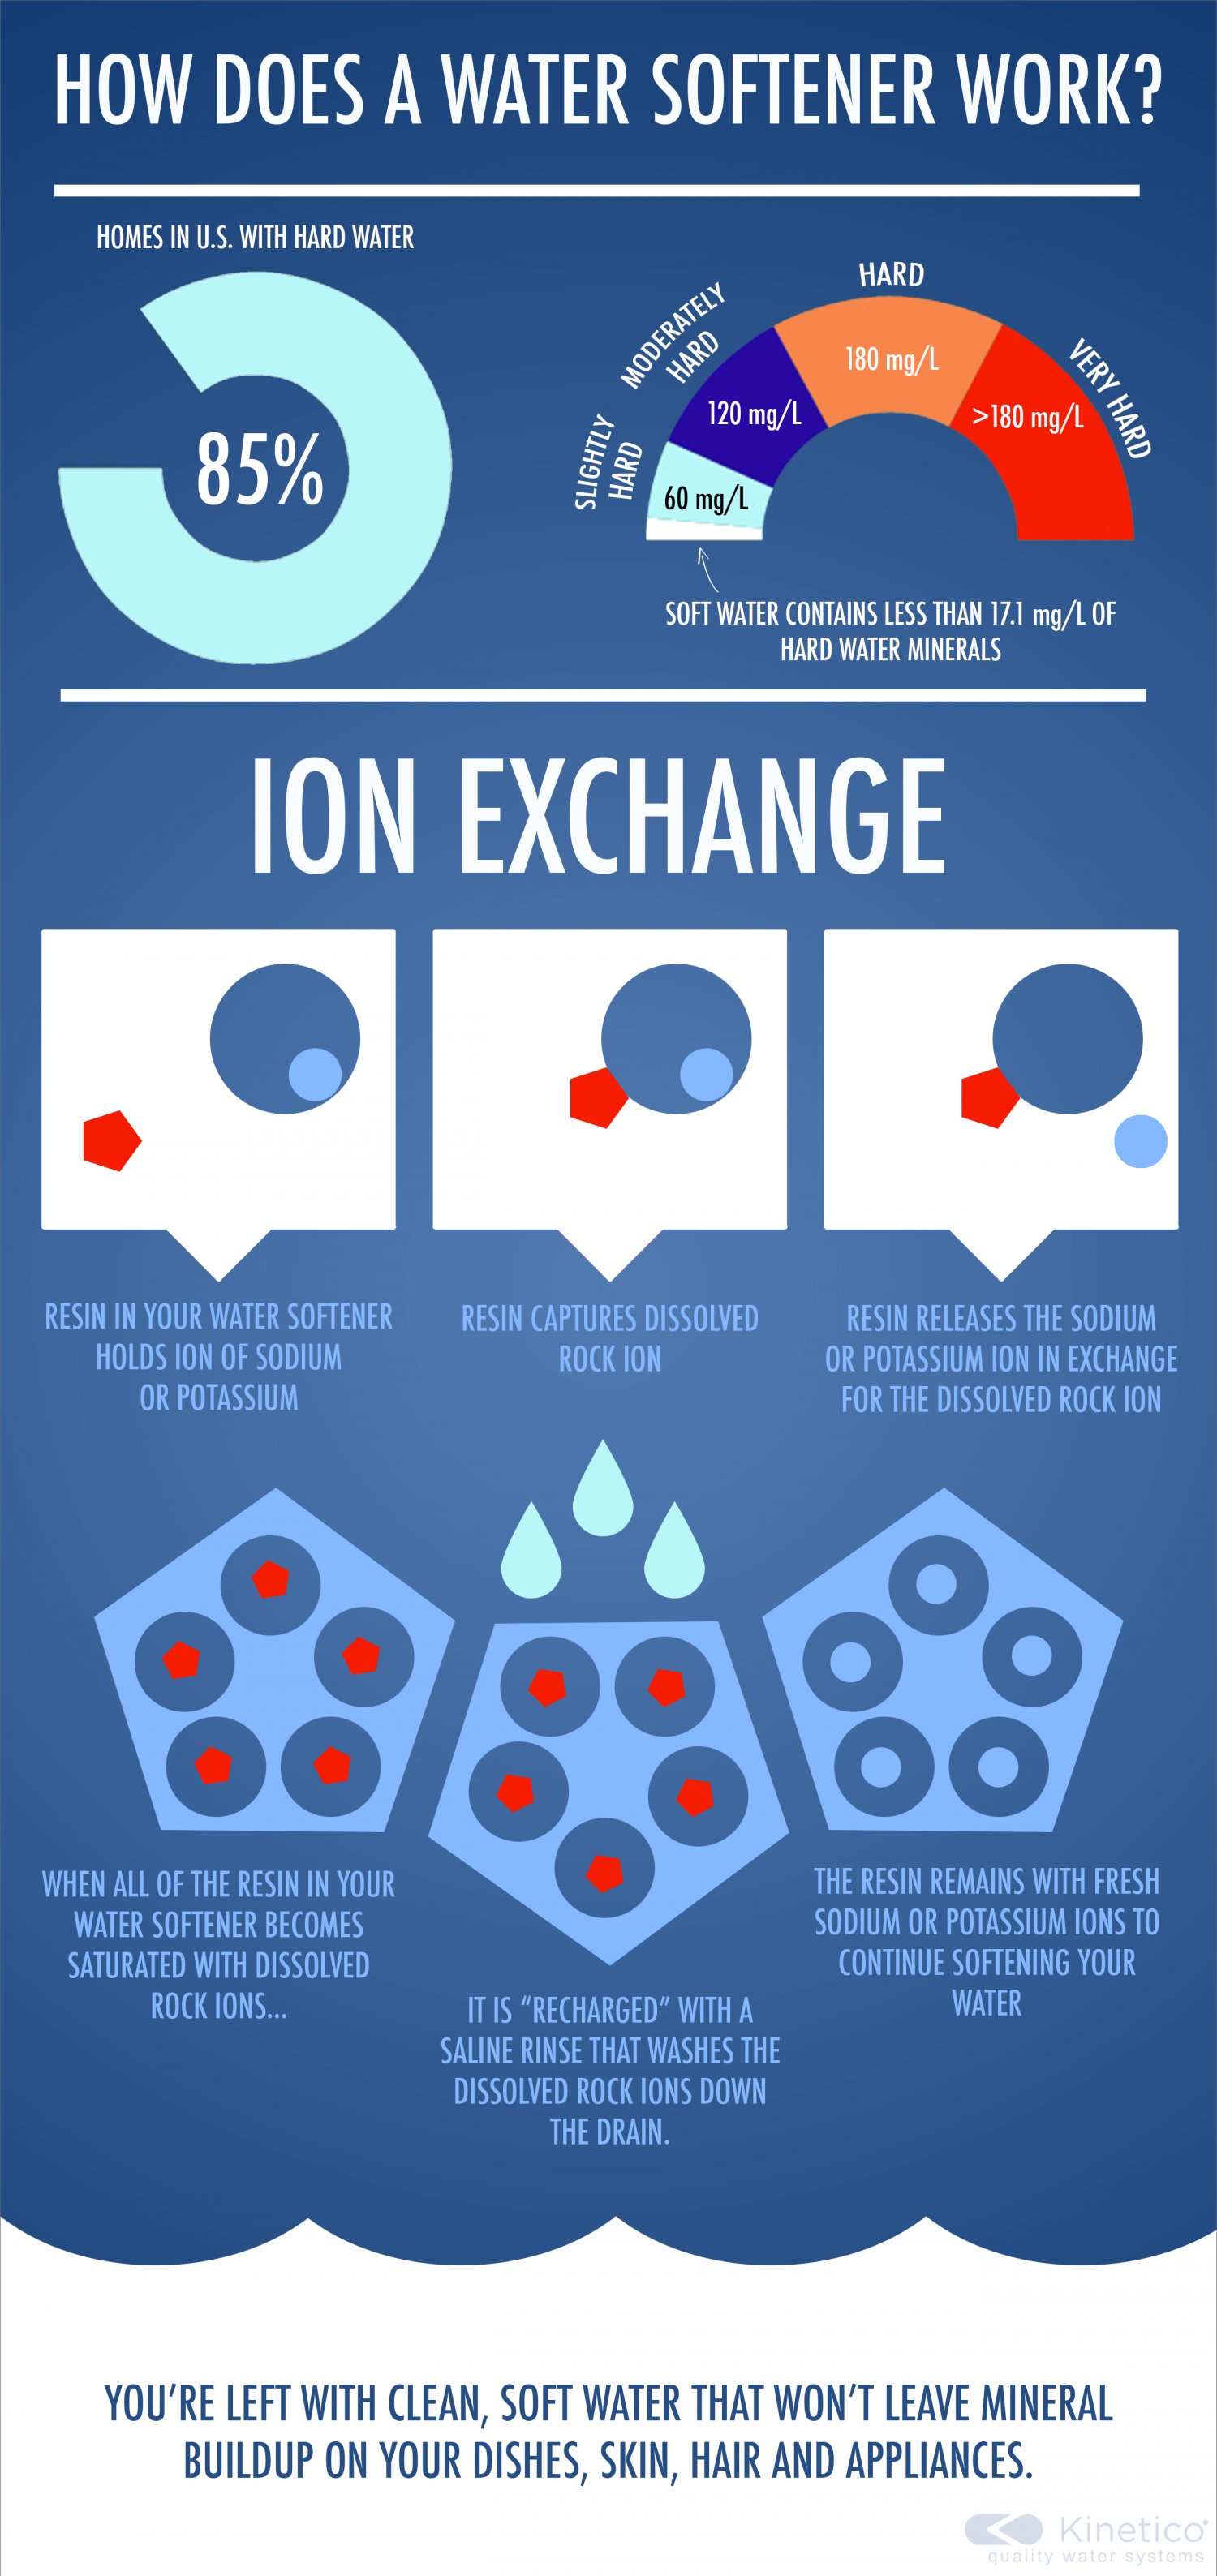 How Does a Water Softener Work? Infographic